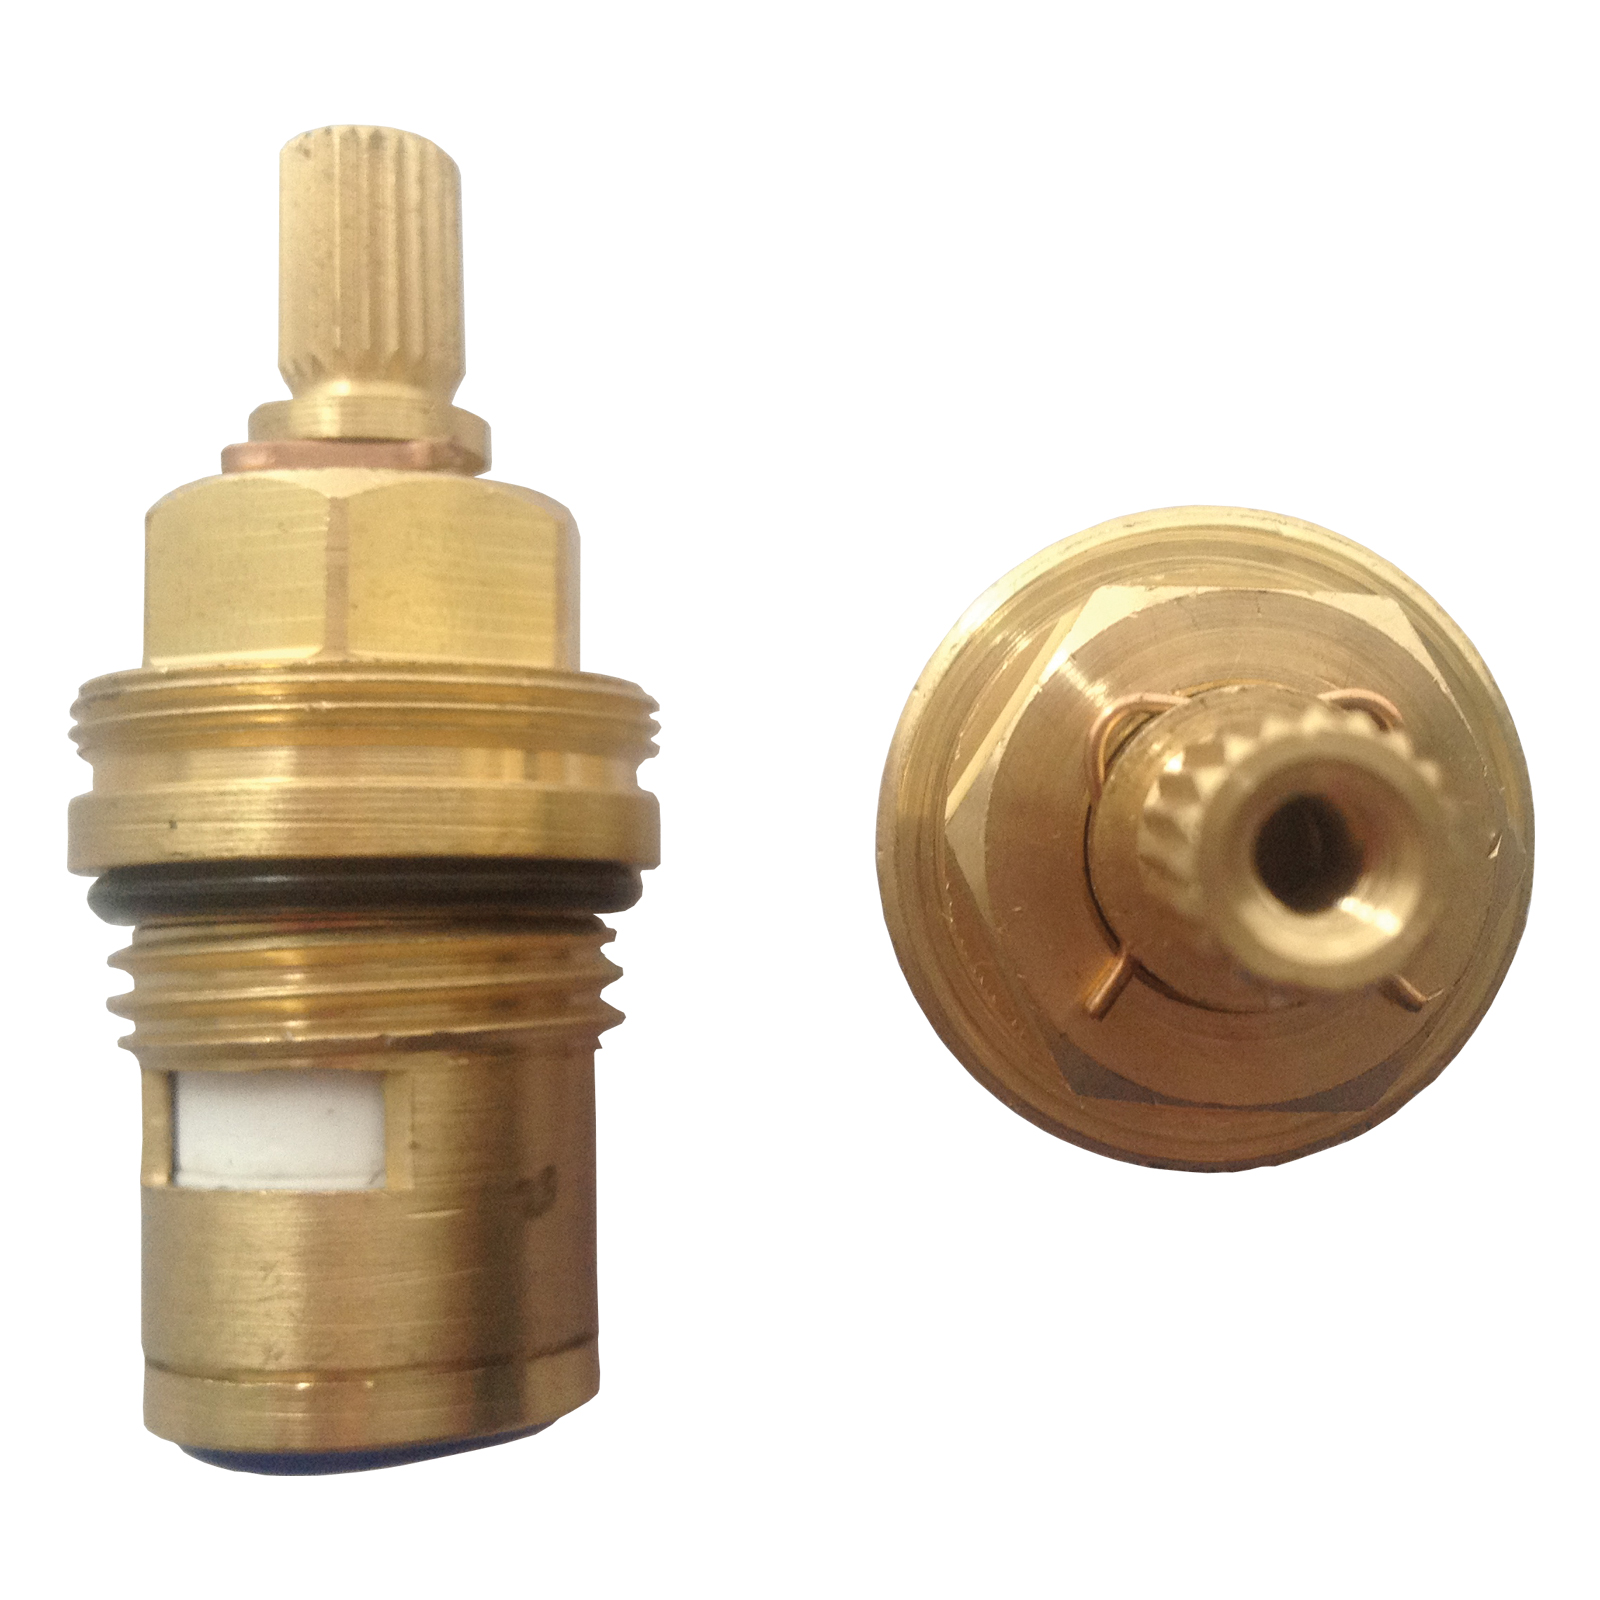 Spare Cartridges for Bristan/ Crosswater Taps